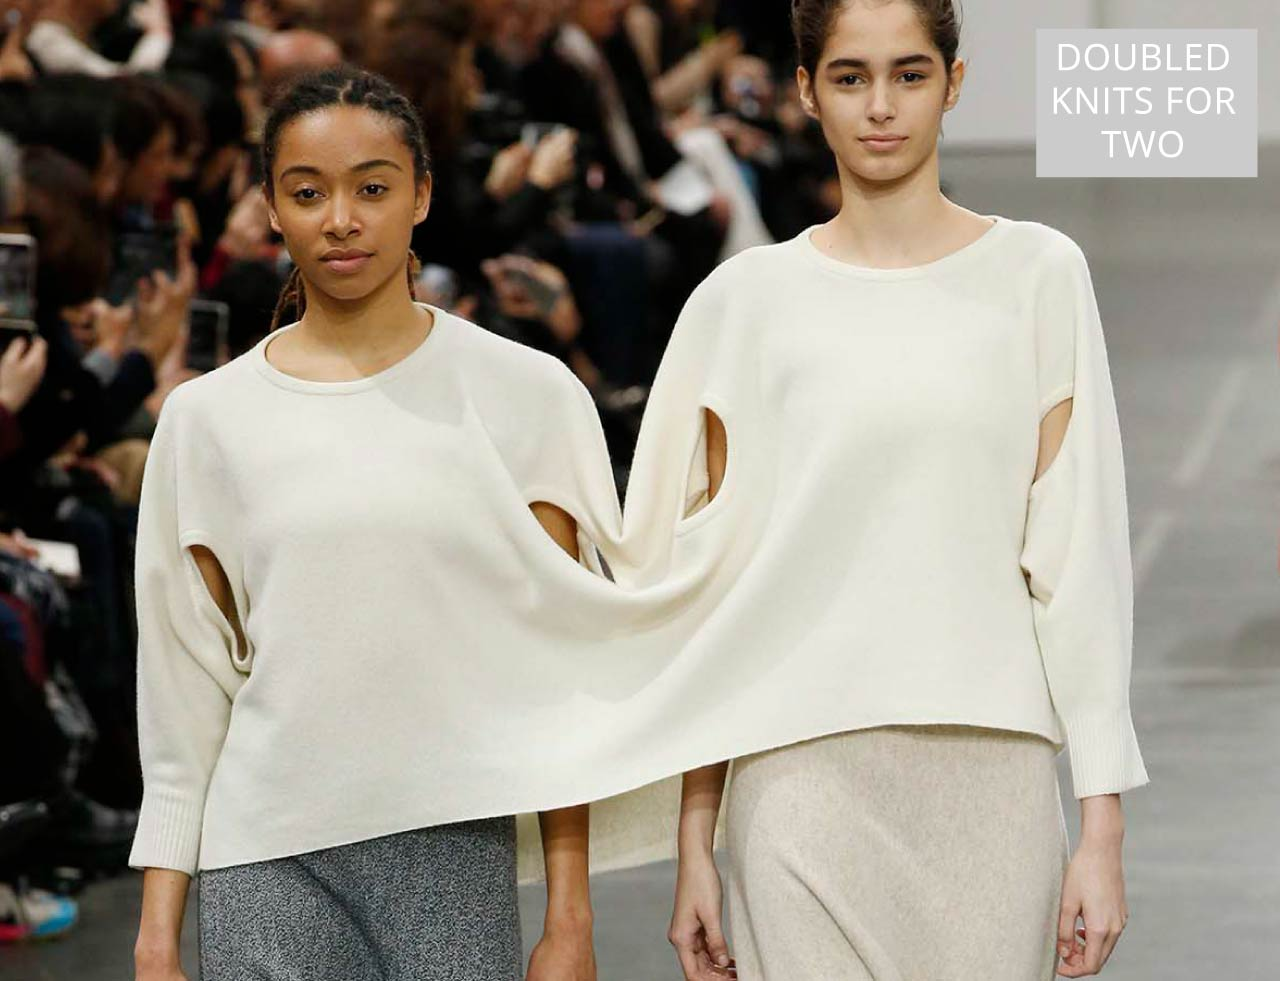 Connected Knits and Layering at Issey Miyake | The Cutting Class. Doubled knits for two people, AW20.